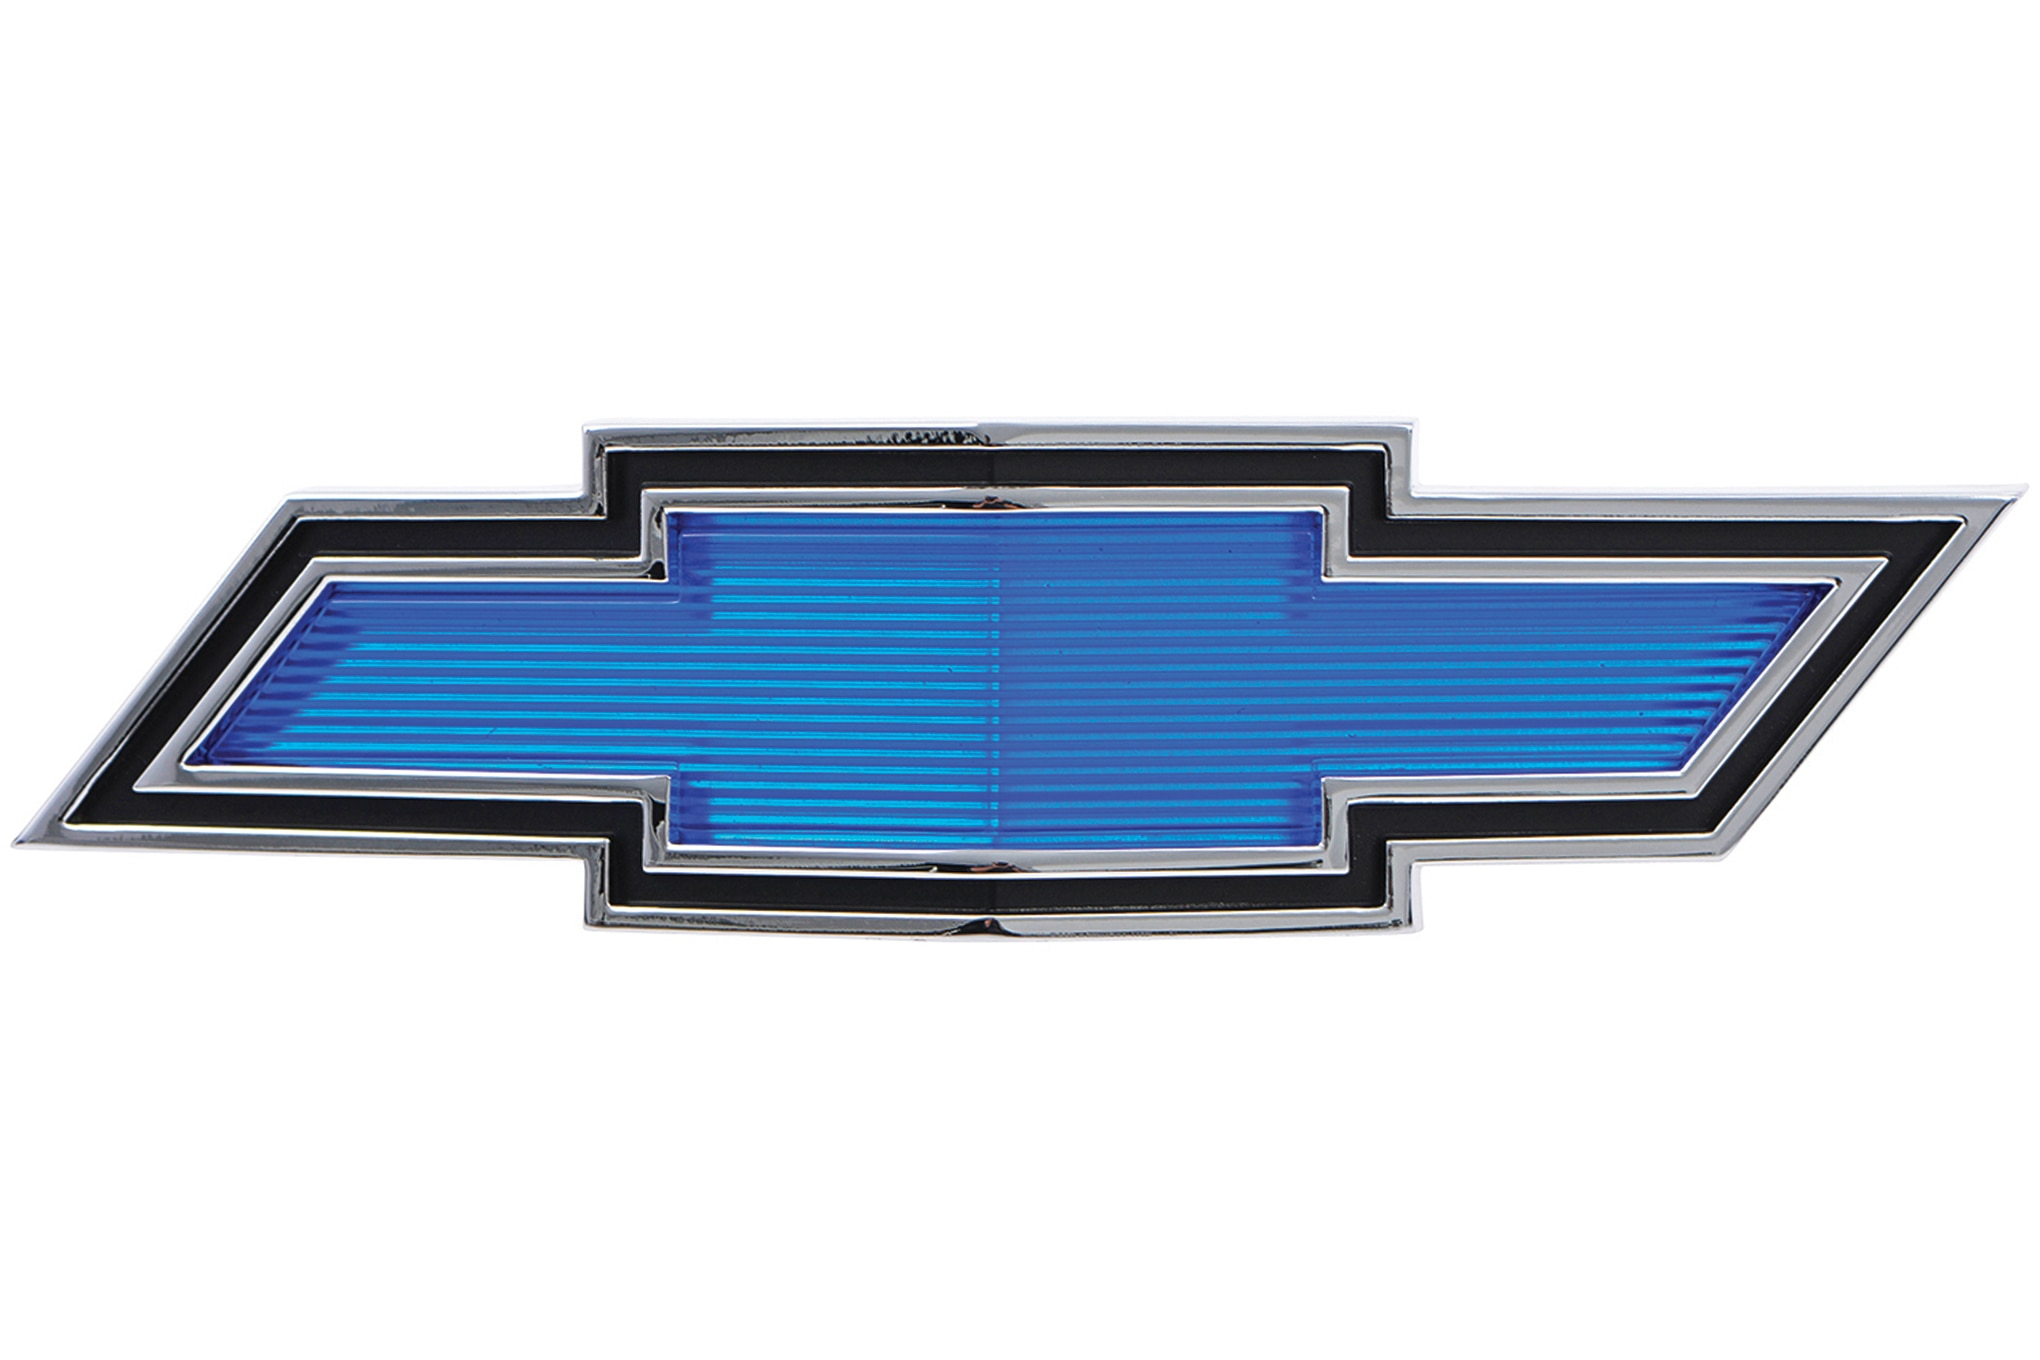 001 Bow Tie Badge